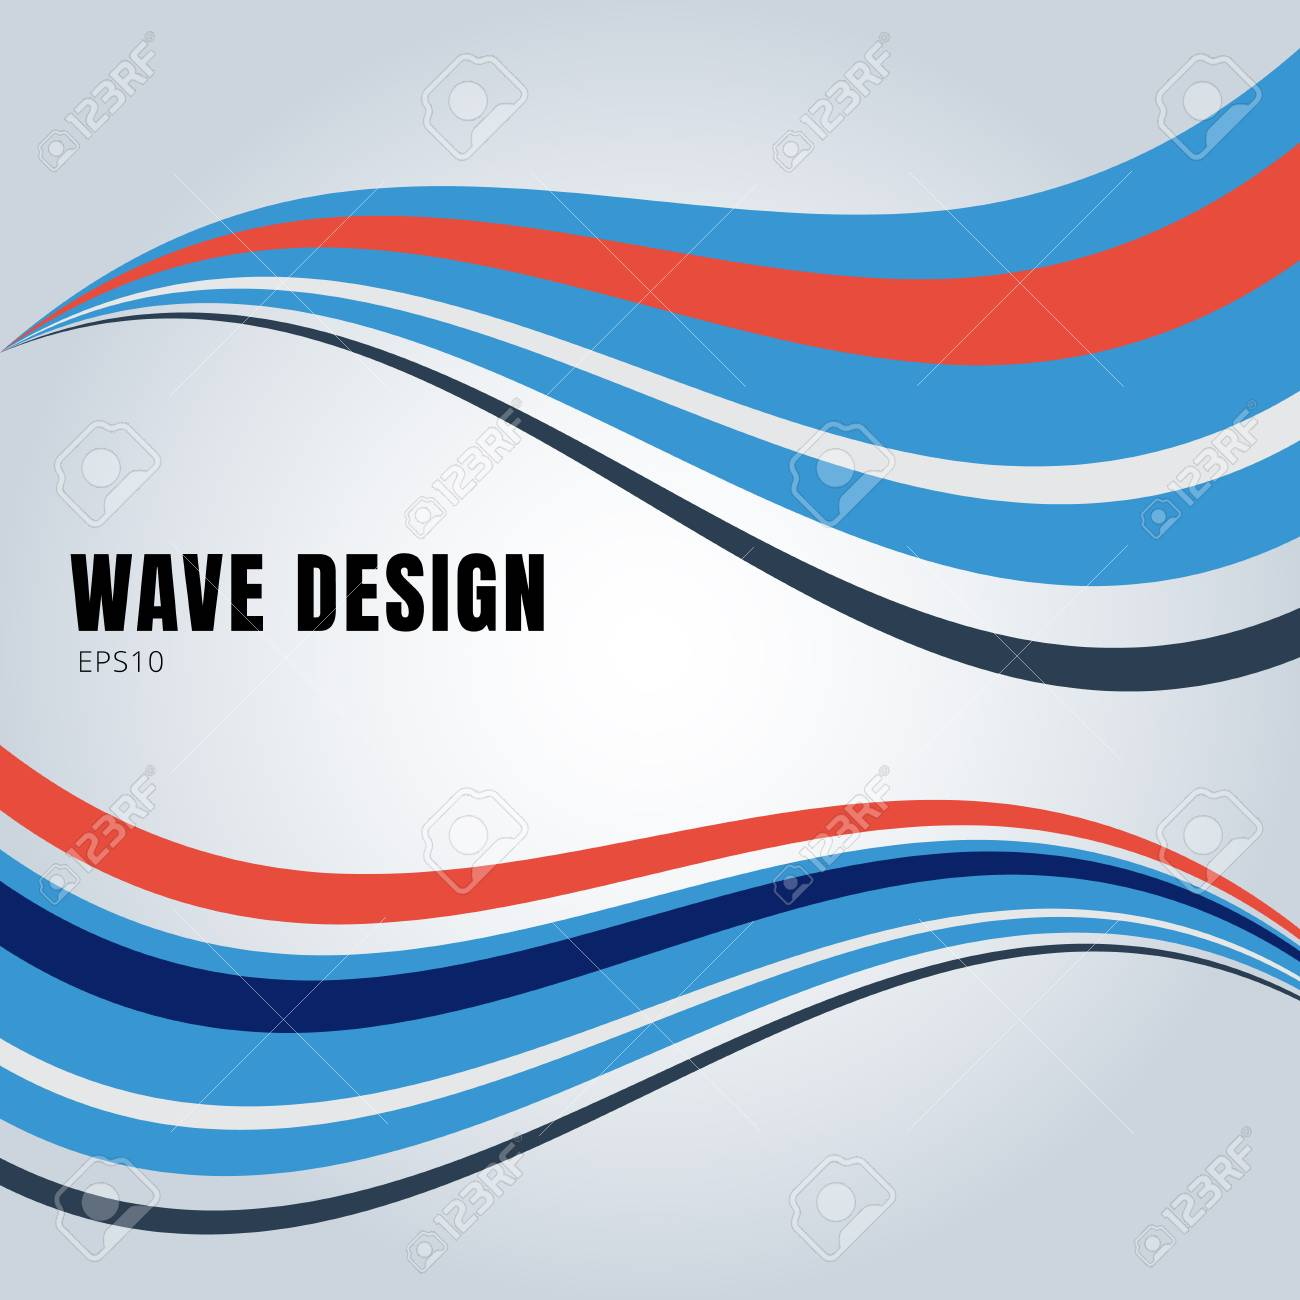 Abstract Blue And Red Color Smooth Waves Design On White Background